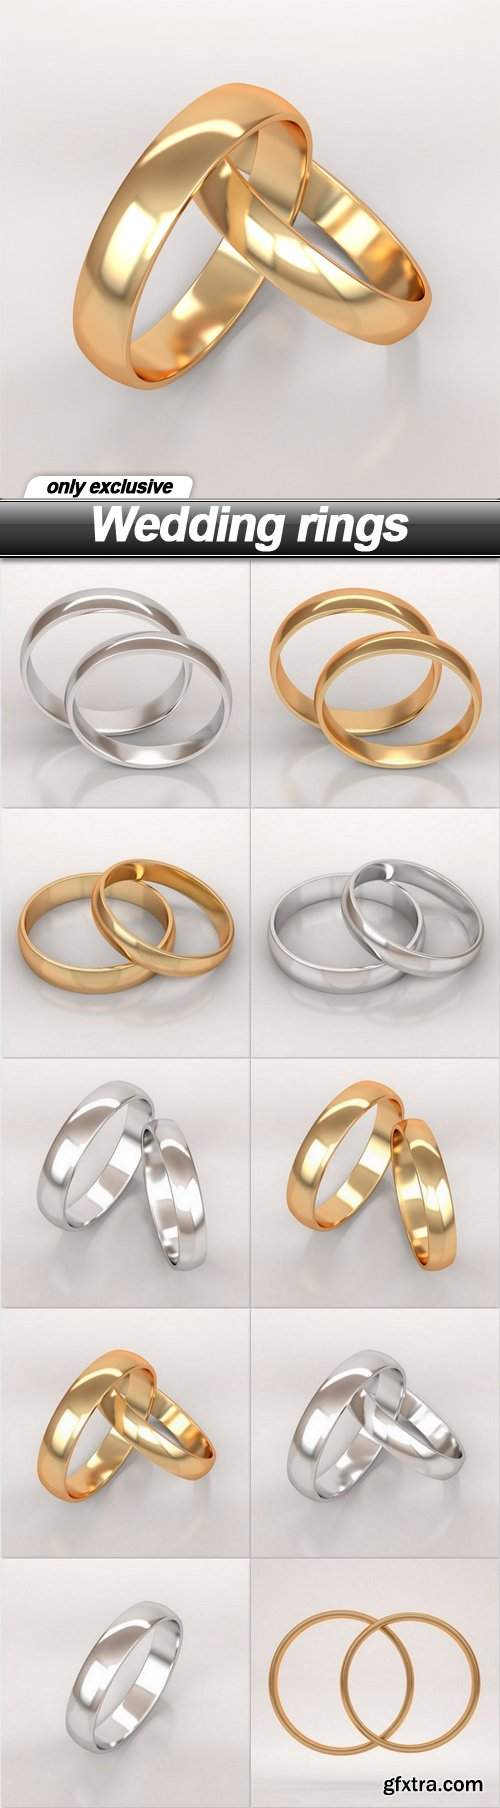 Wedding rings - 10 UHQ JPEG